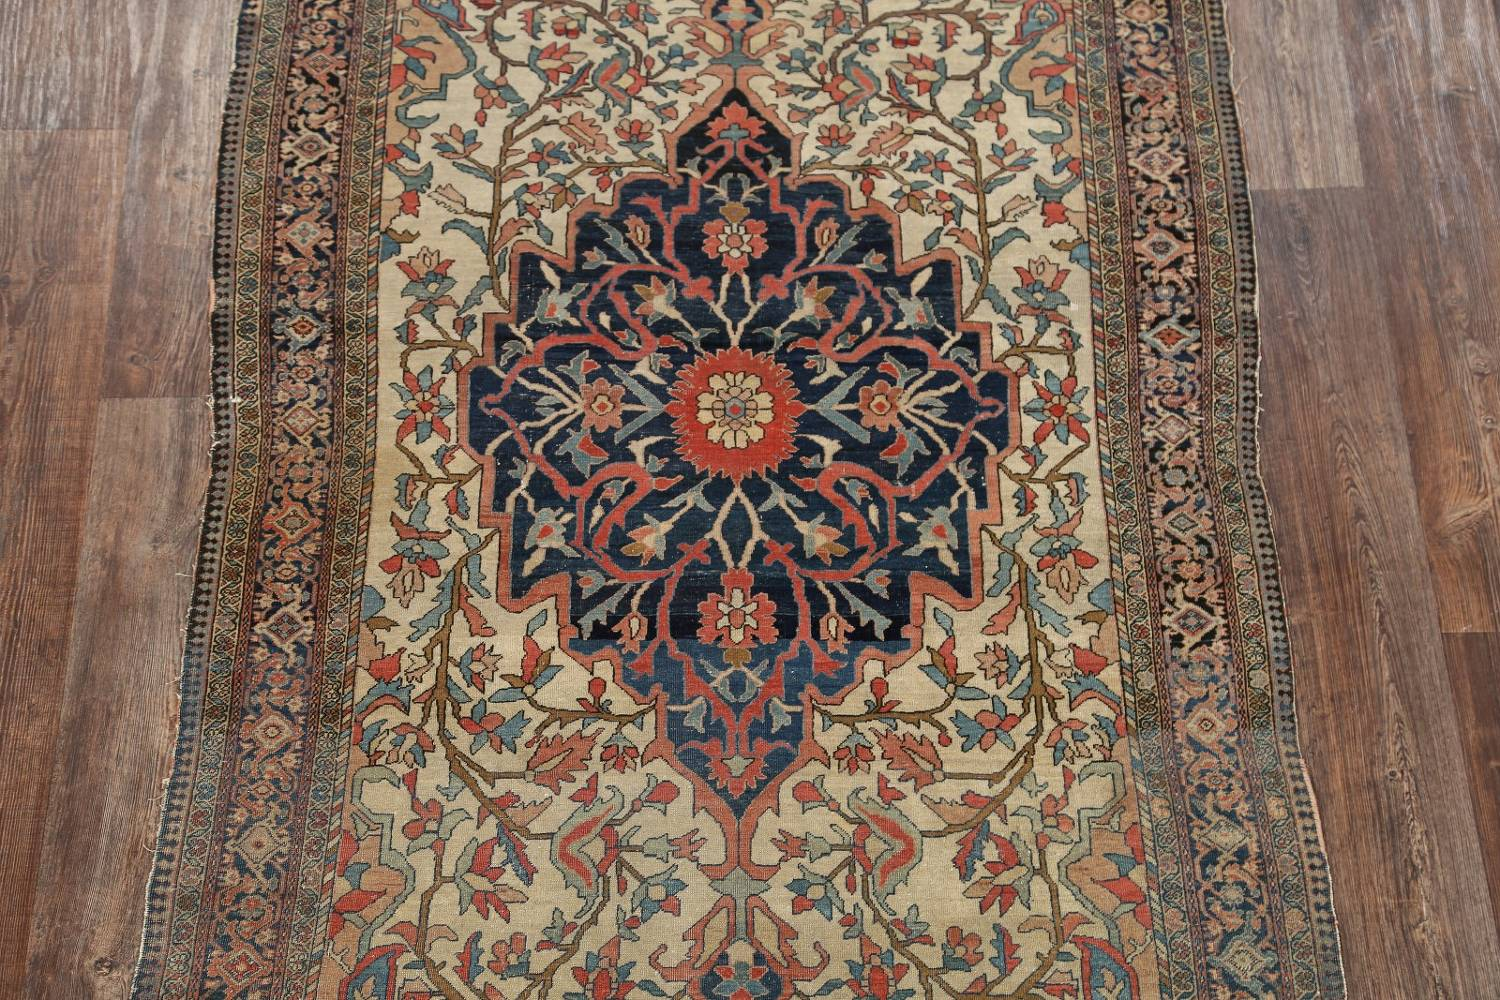 Pre-1900 Antique Floral Sarouk Farahan Persian Hand-Knotted 4'x7' Wool Area Rug image 3